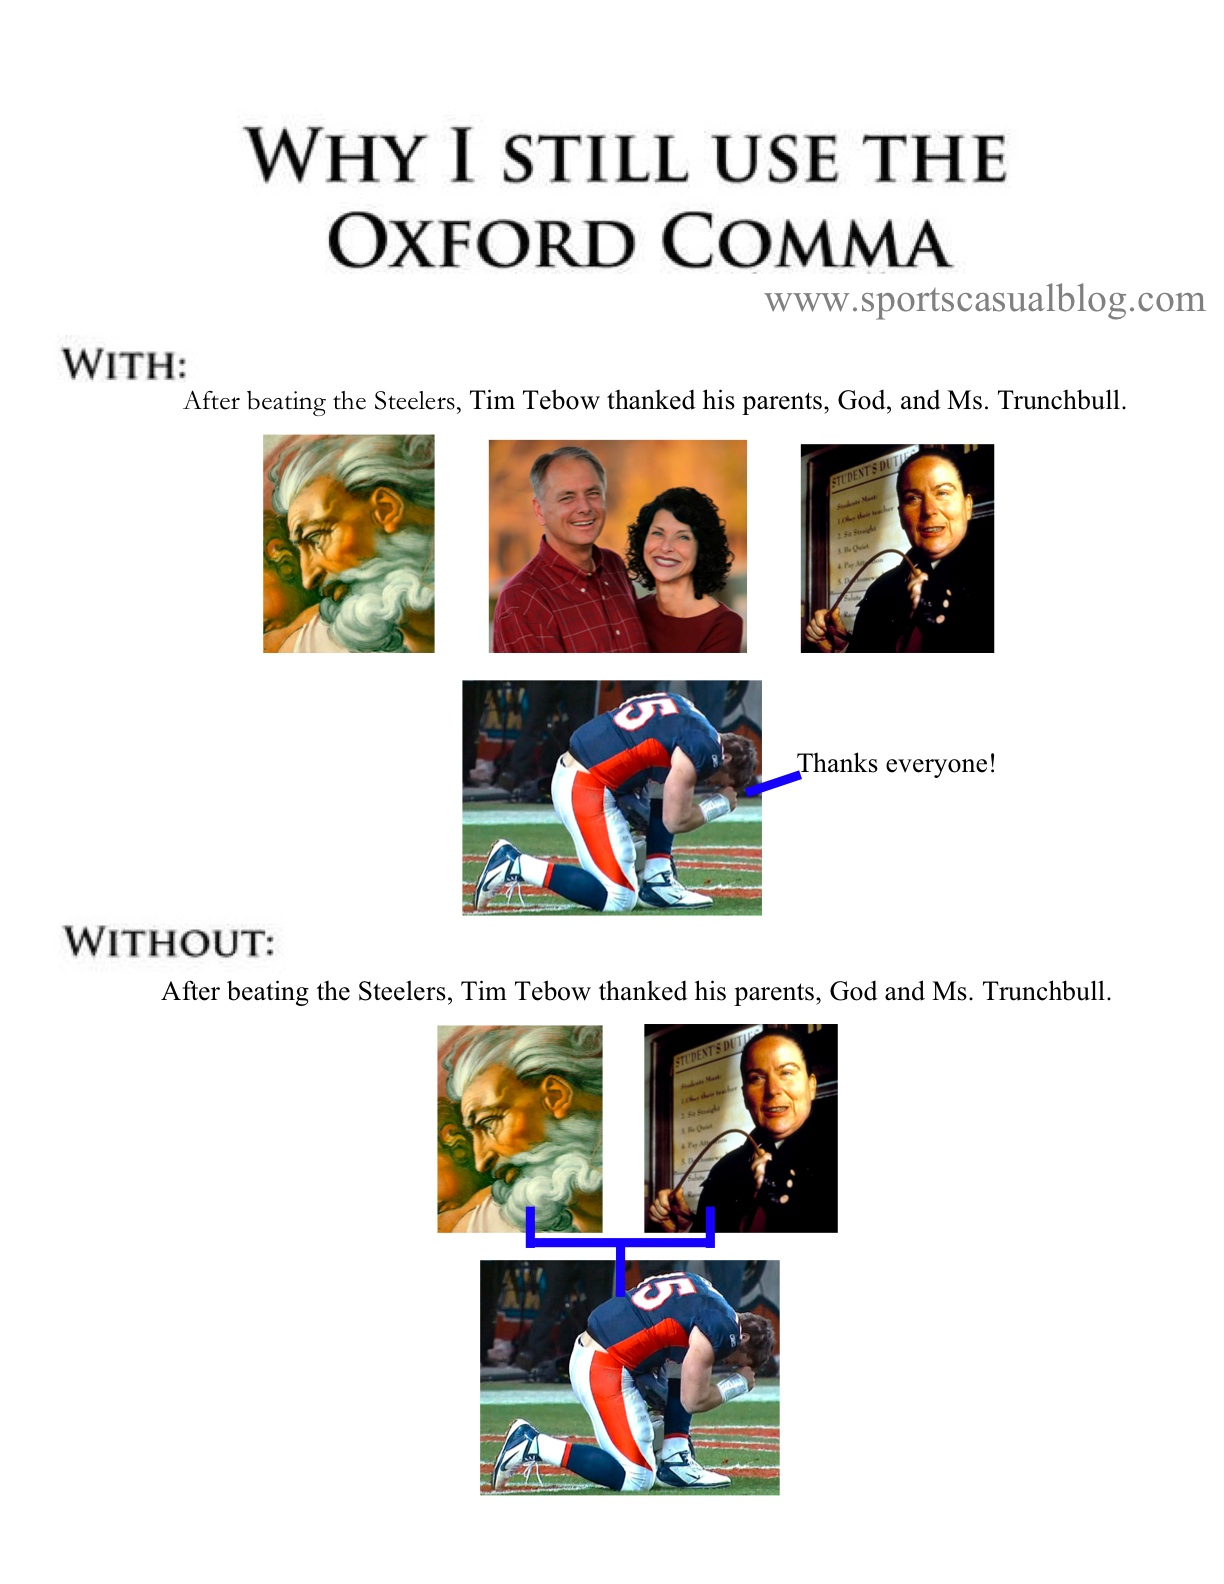 The Case For Using The Oxford Comma